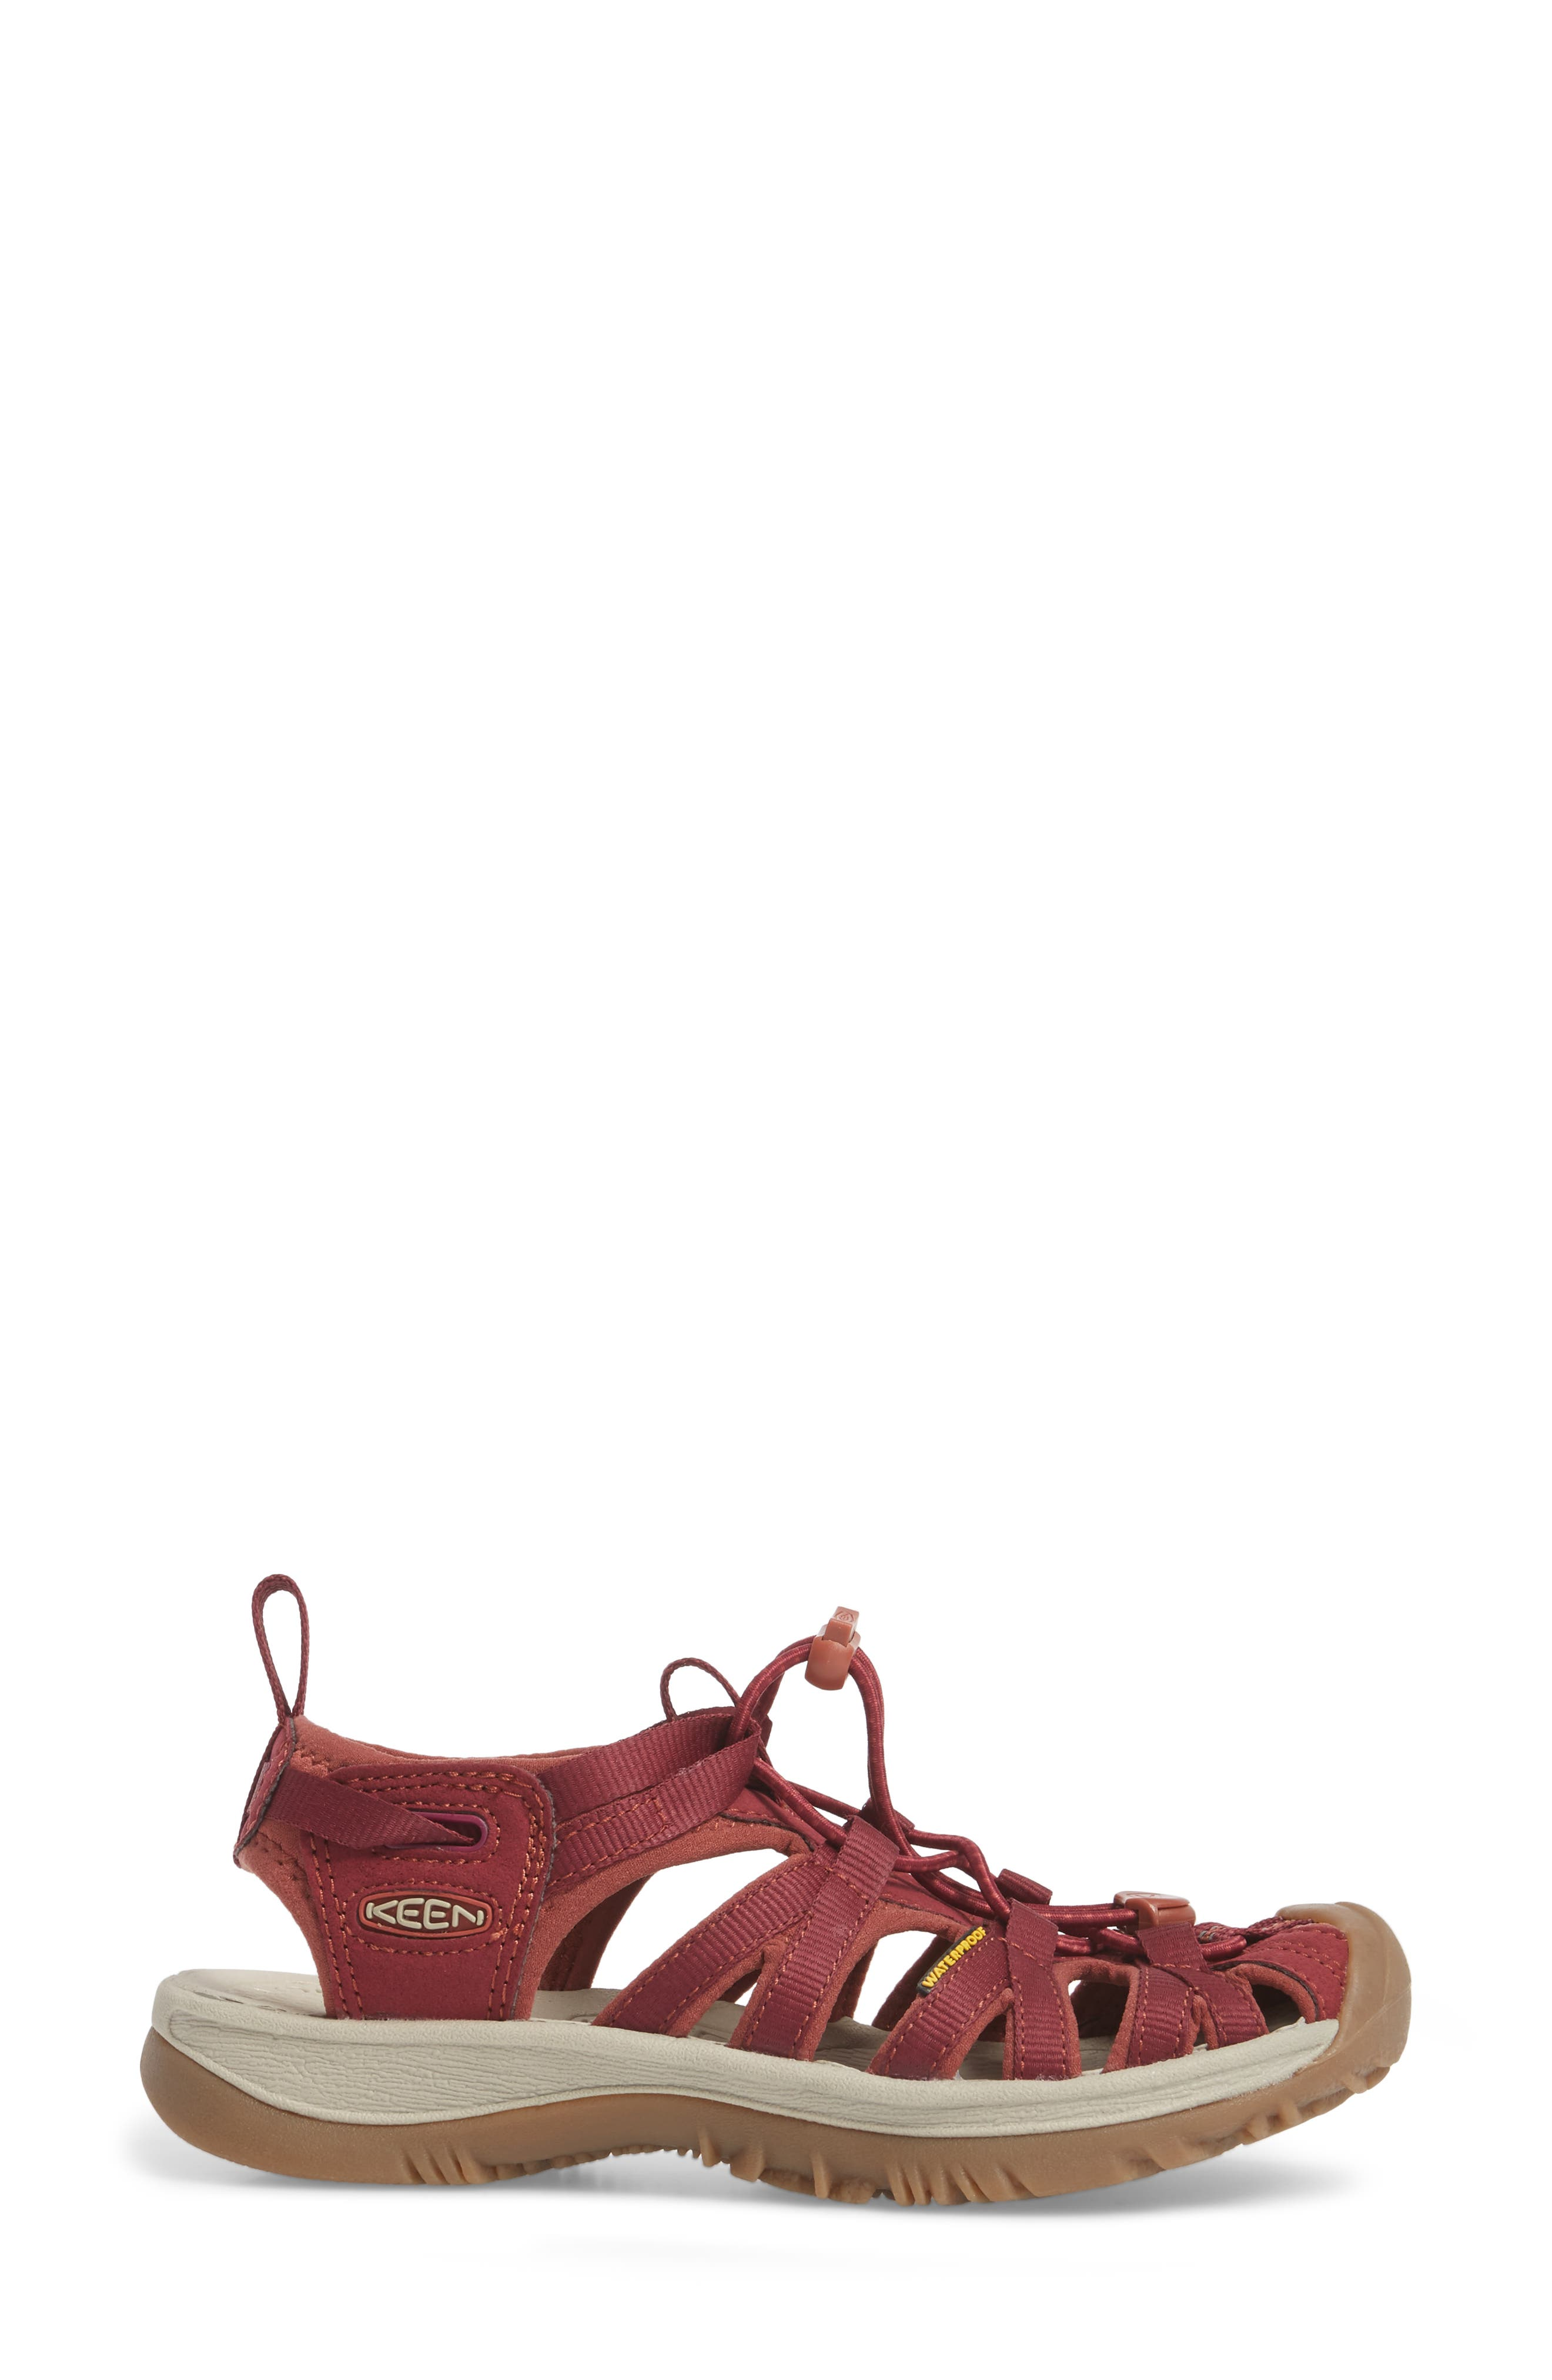 'Whisper' Water Friendly Sport Sandal,                             Alternate thumbnail 3, color,                             Rhododendron/ Marsala